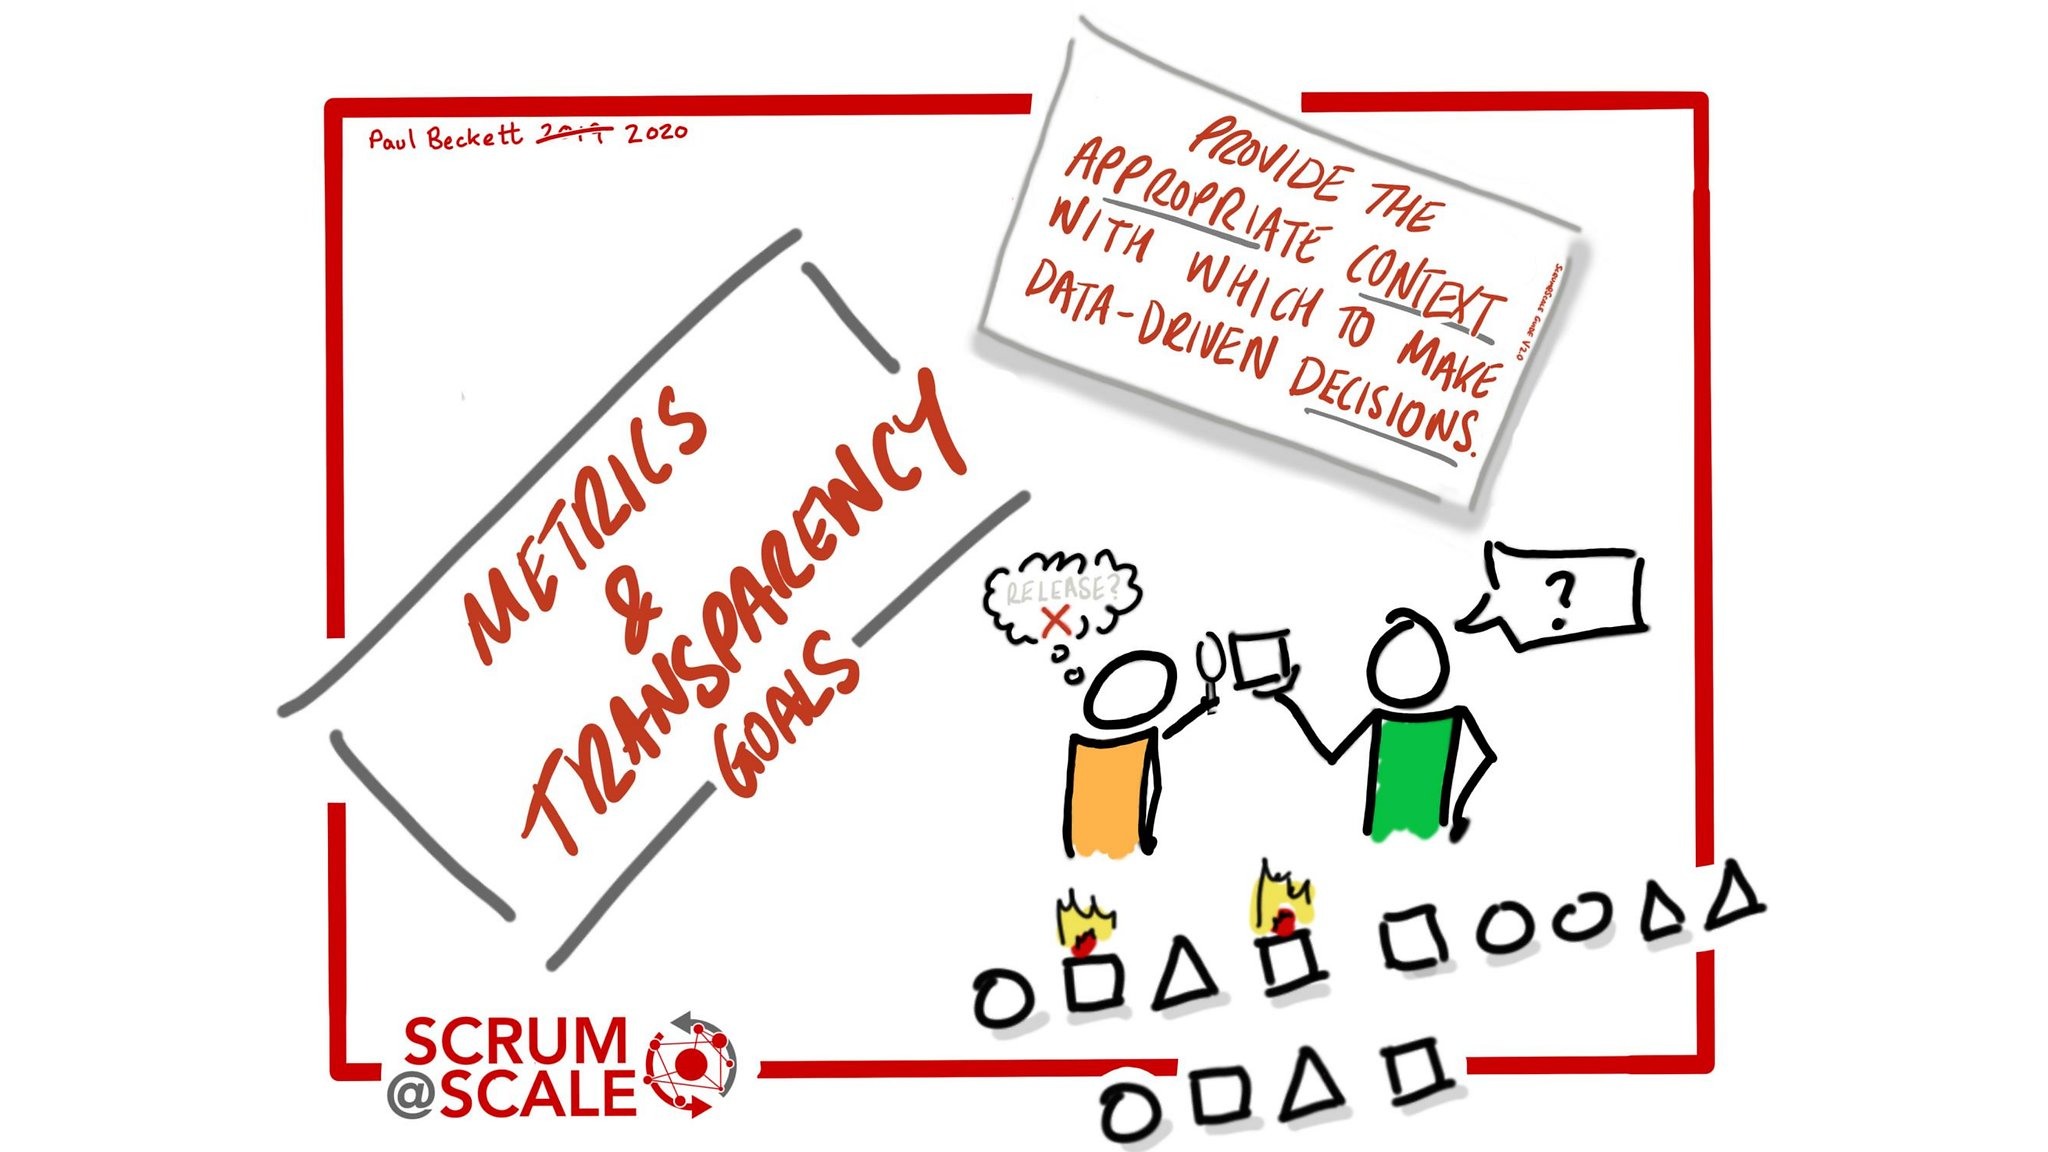 Appropriate Context | Goals of Metrics & Transparency - Scrum@Scale Component